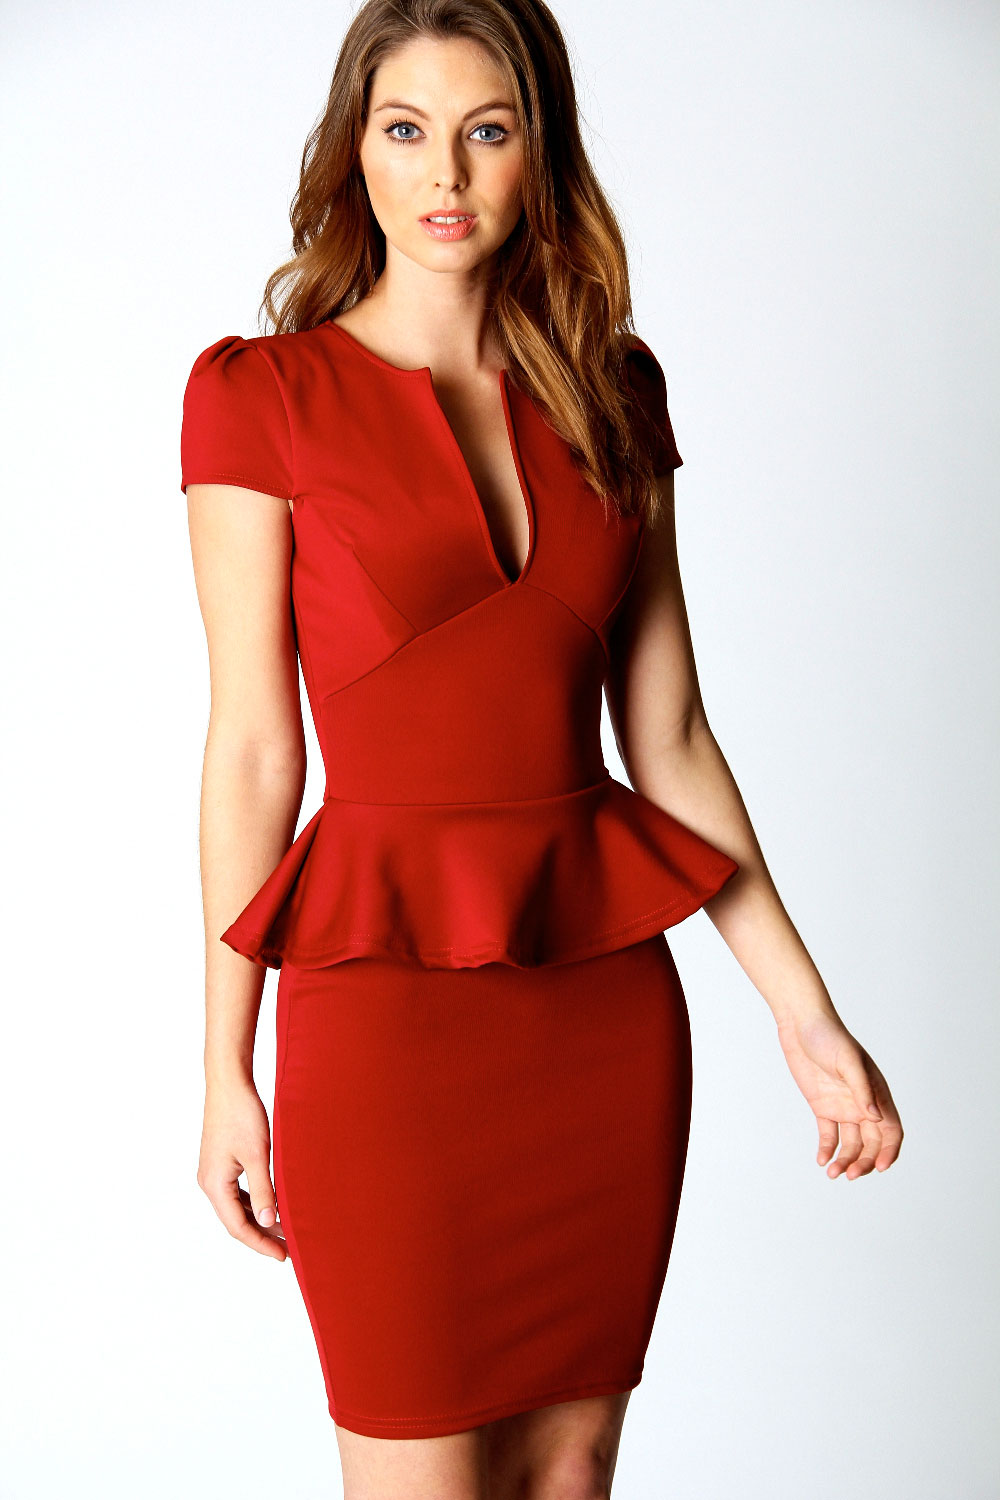 Red Peplum Dress Picture Collection Dressedupgirl Com